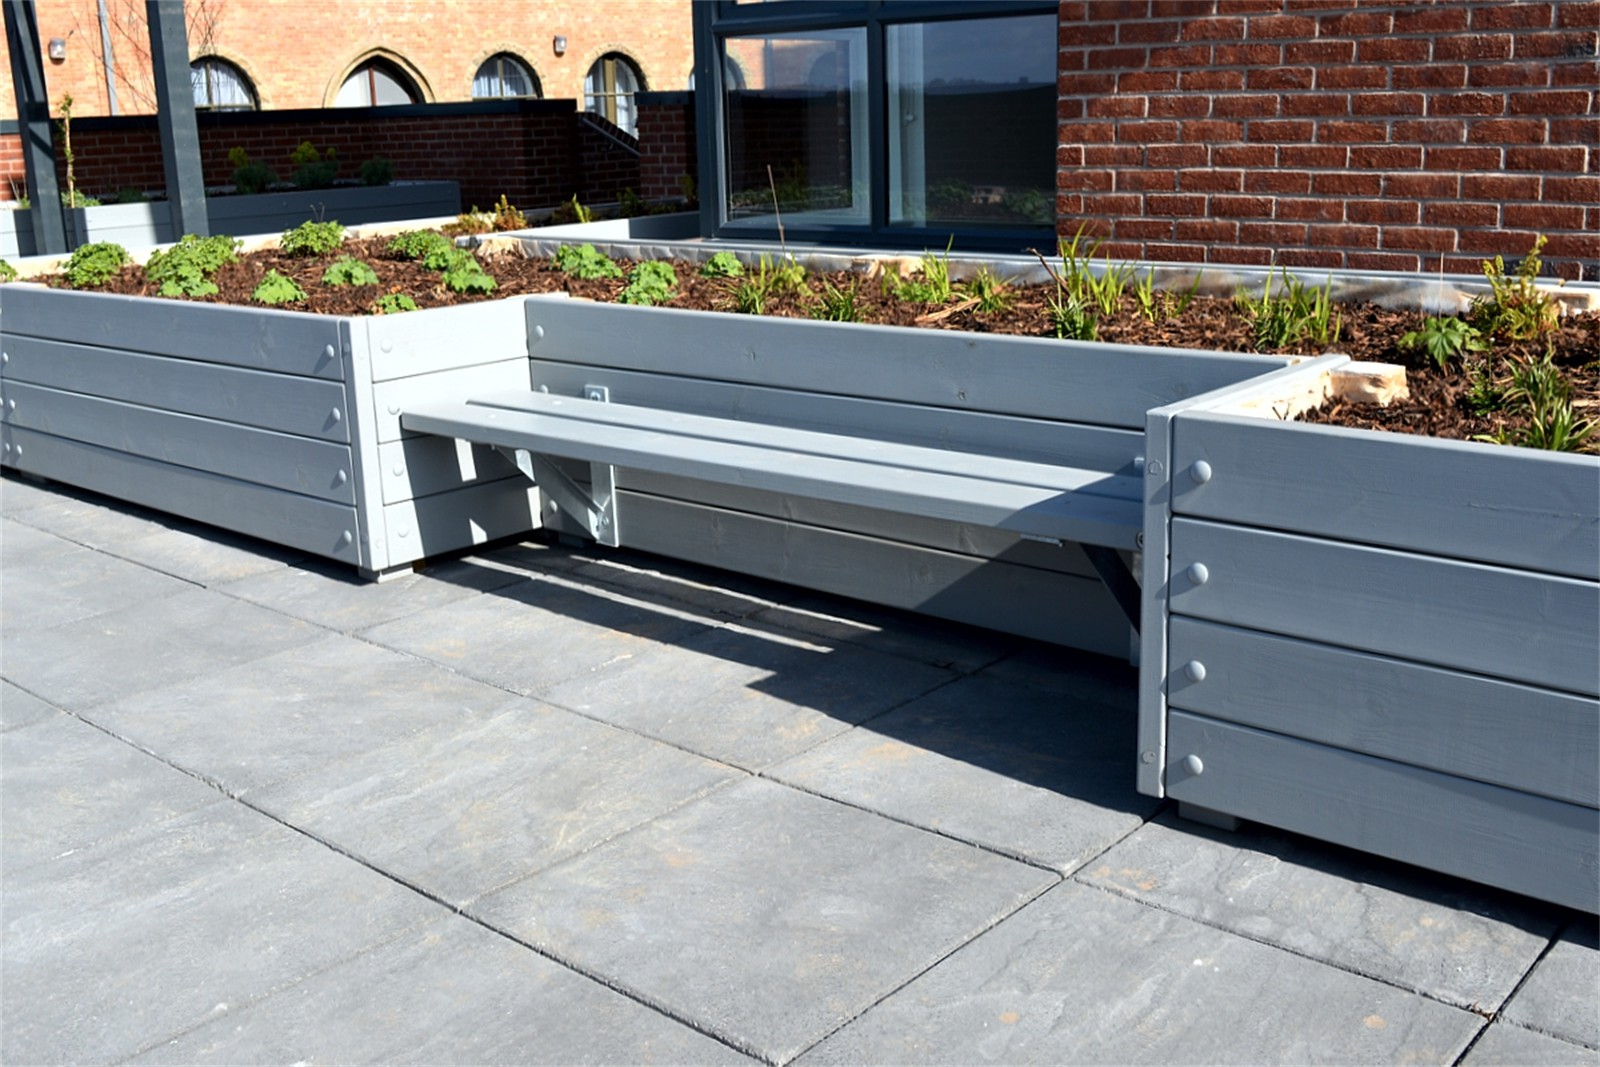 38pgr55 - Grenadier planters with Henley bench